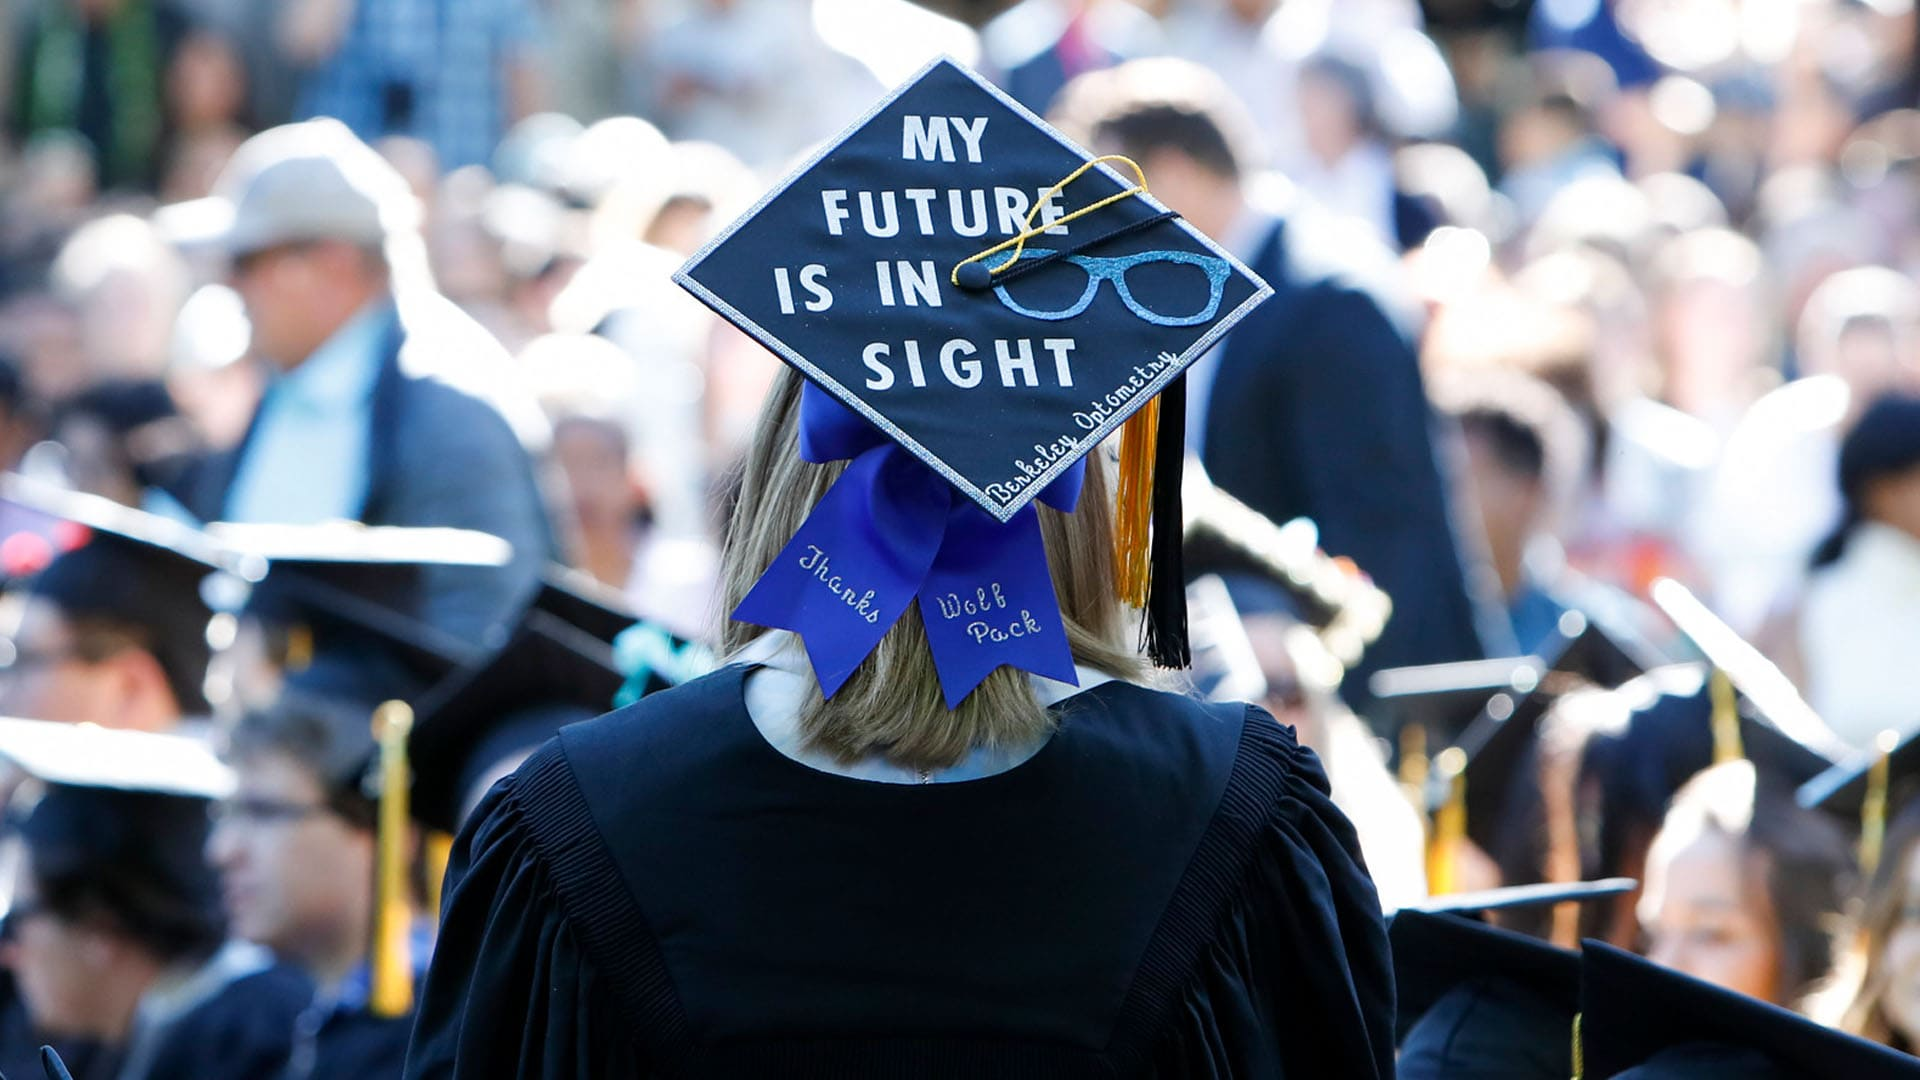 """A student wearing a mortar board with the words """"My future is in sight"""" stands among a crowd of graduating students."""